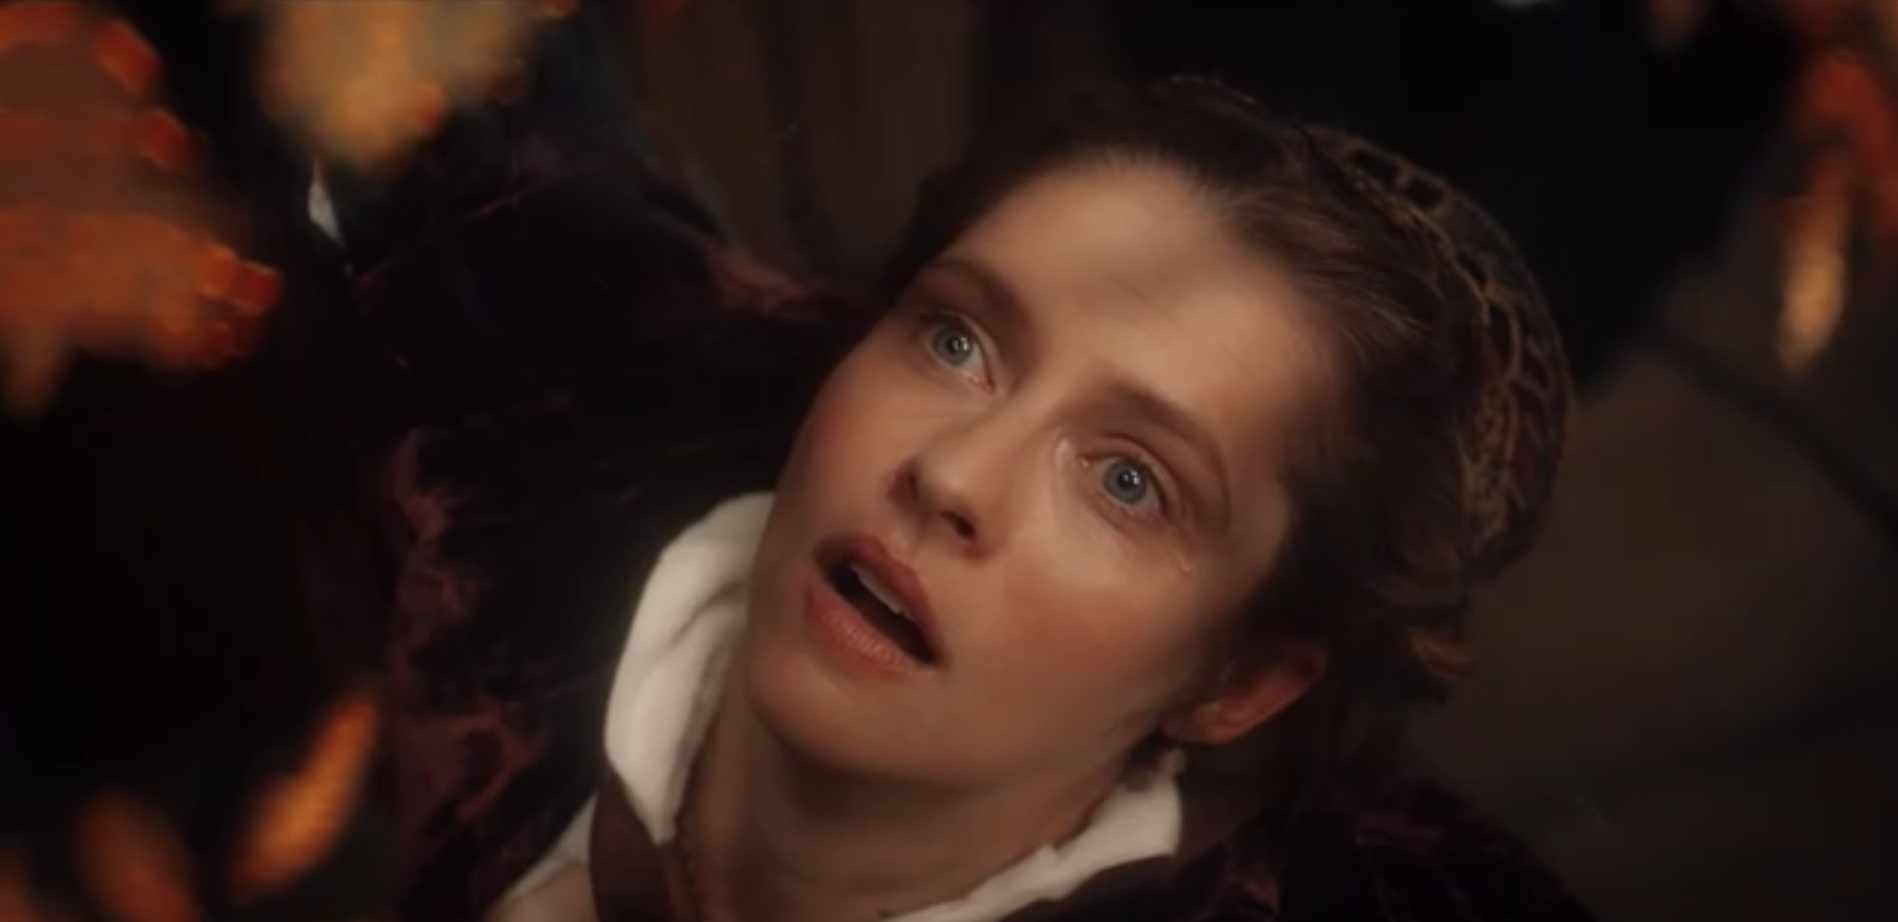 'A Discovery of Witches' 2x03 Review: The Princess Turns Into a Tree in This One